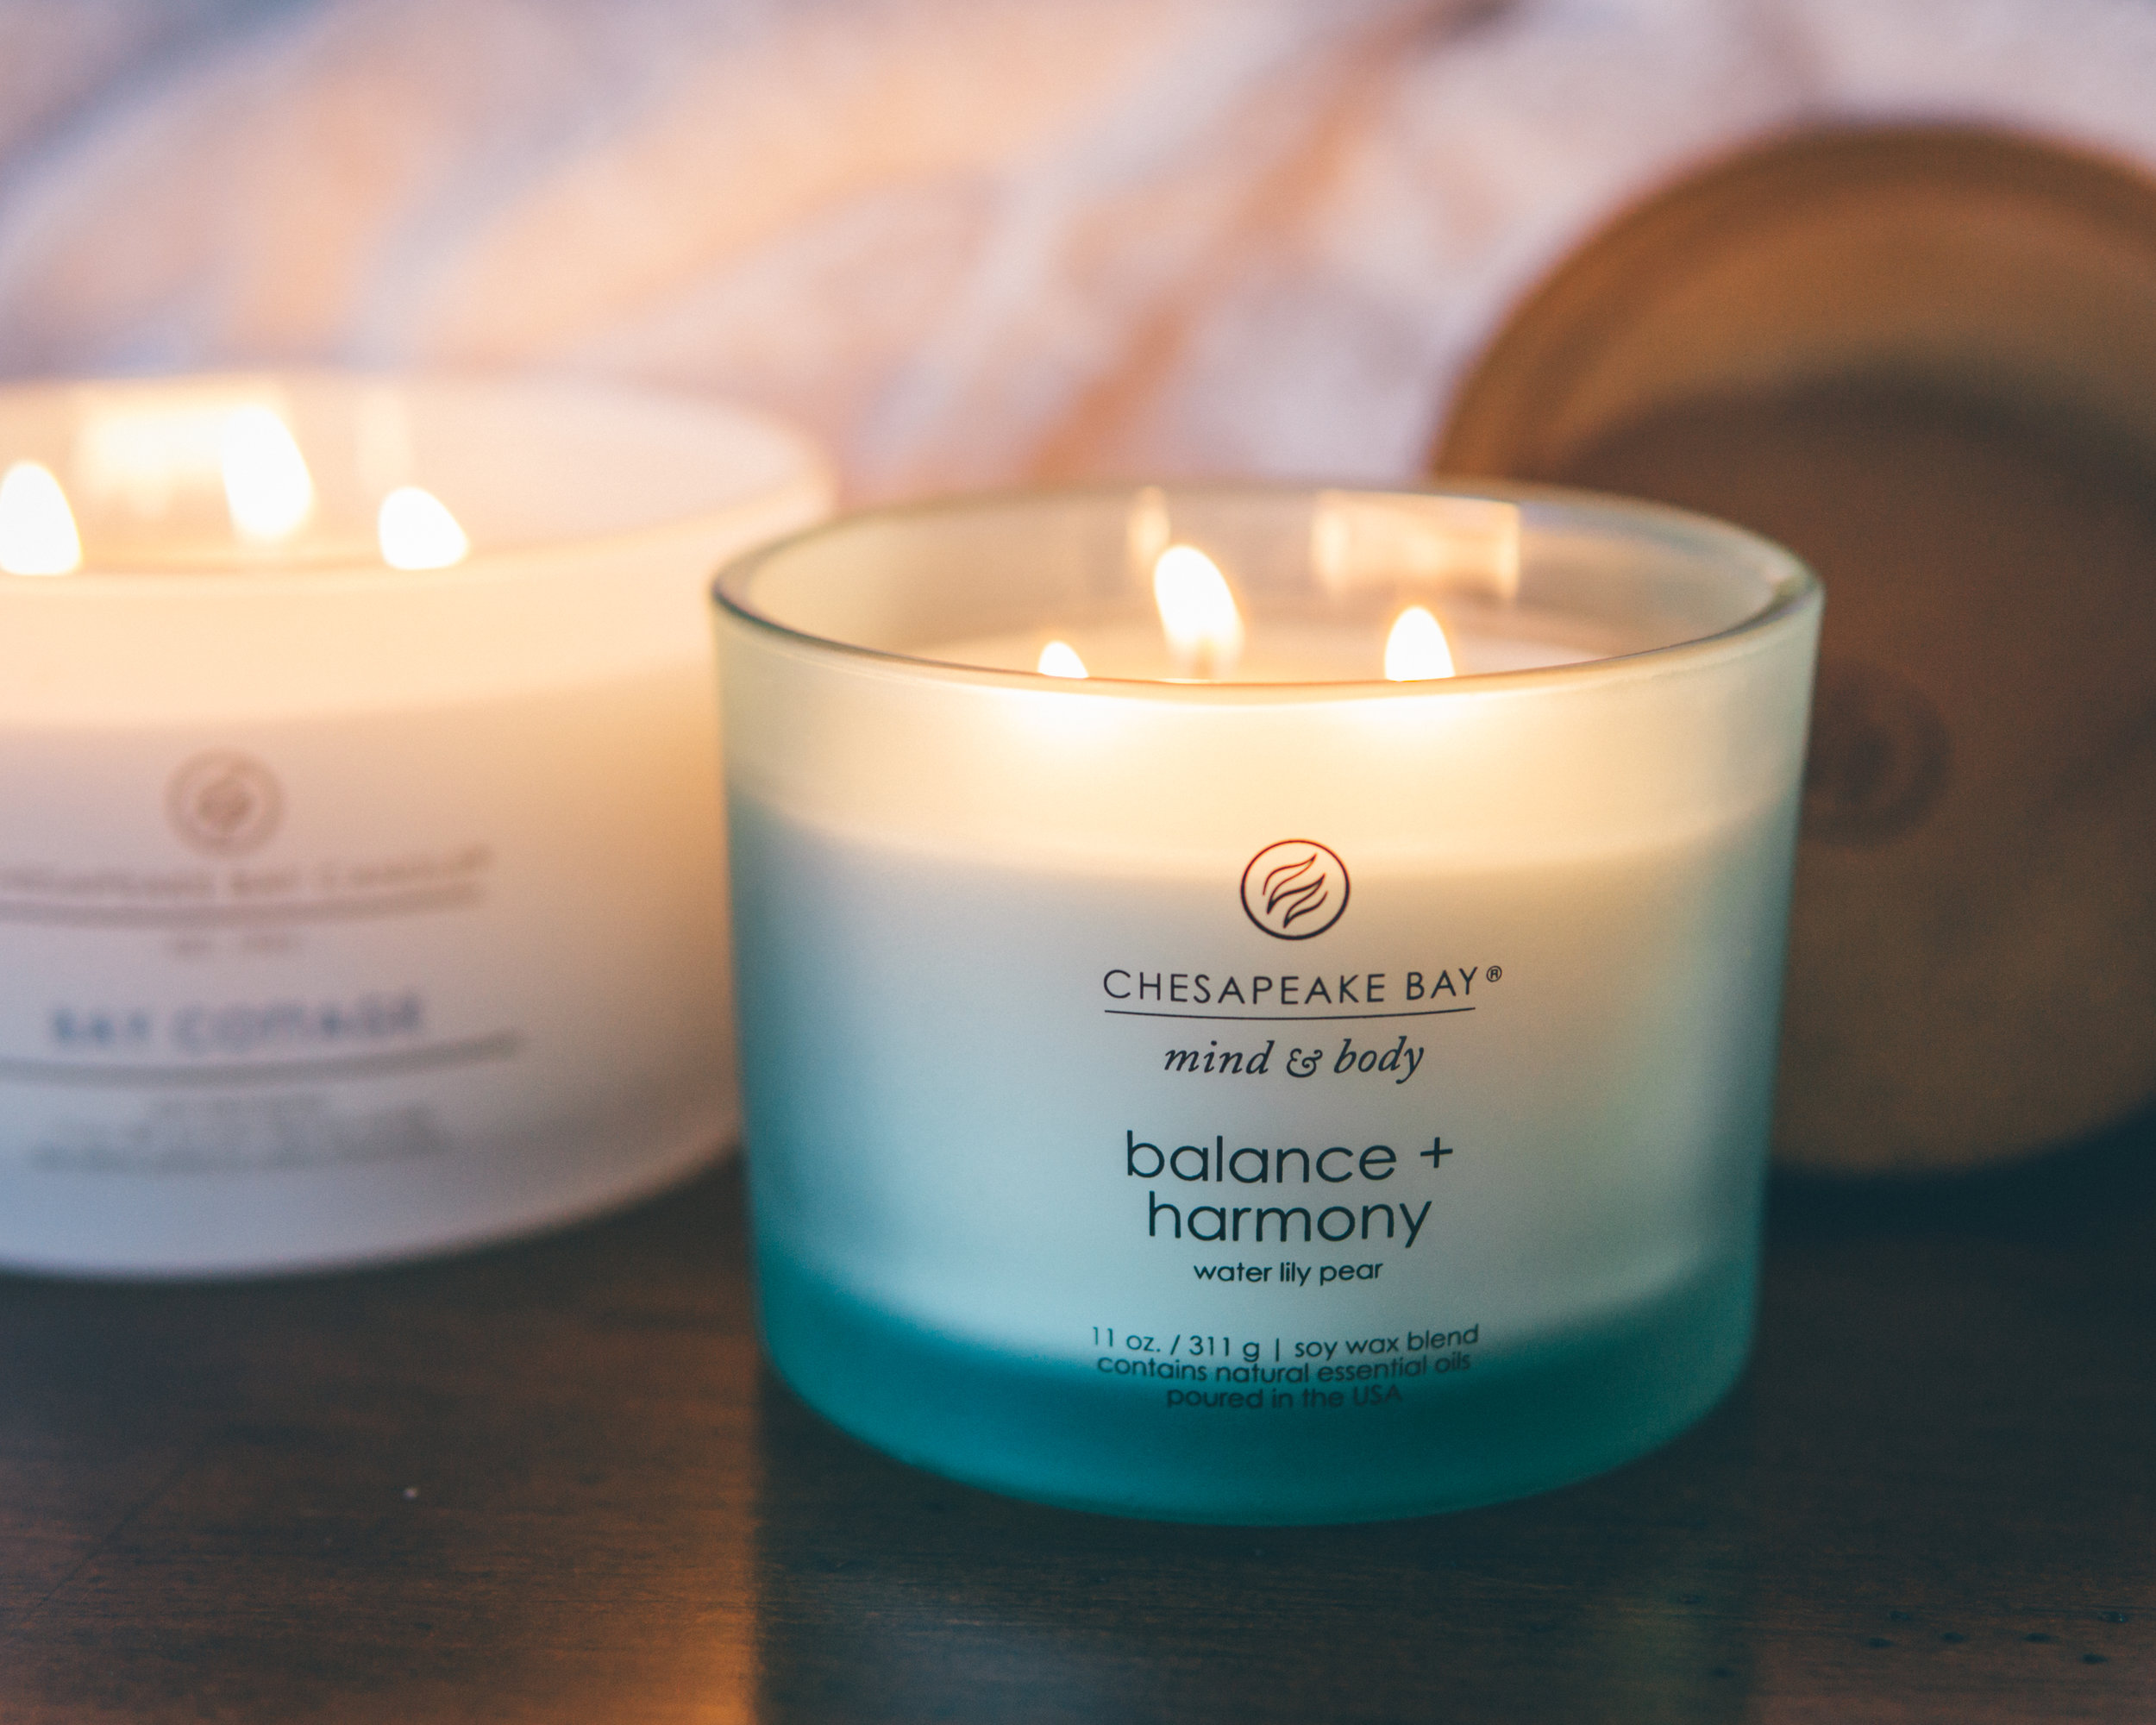 Chesapeake Bay Candle - Balance + Harmony Scented CandleJuicy fruits meet fresh floral notes &creamy coconut - give the gift of tranquility.